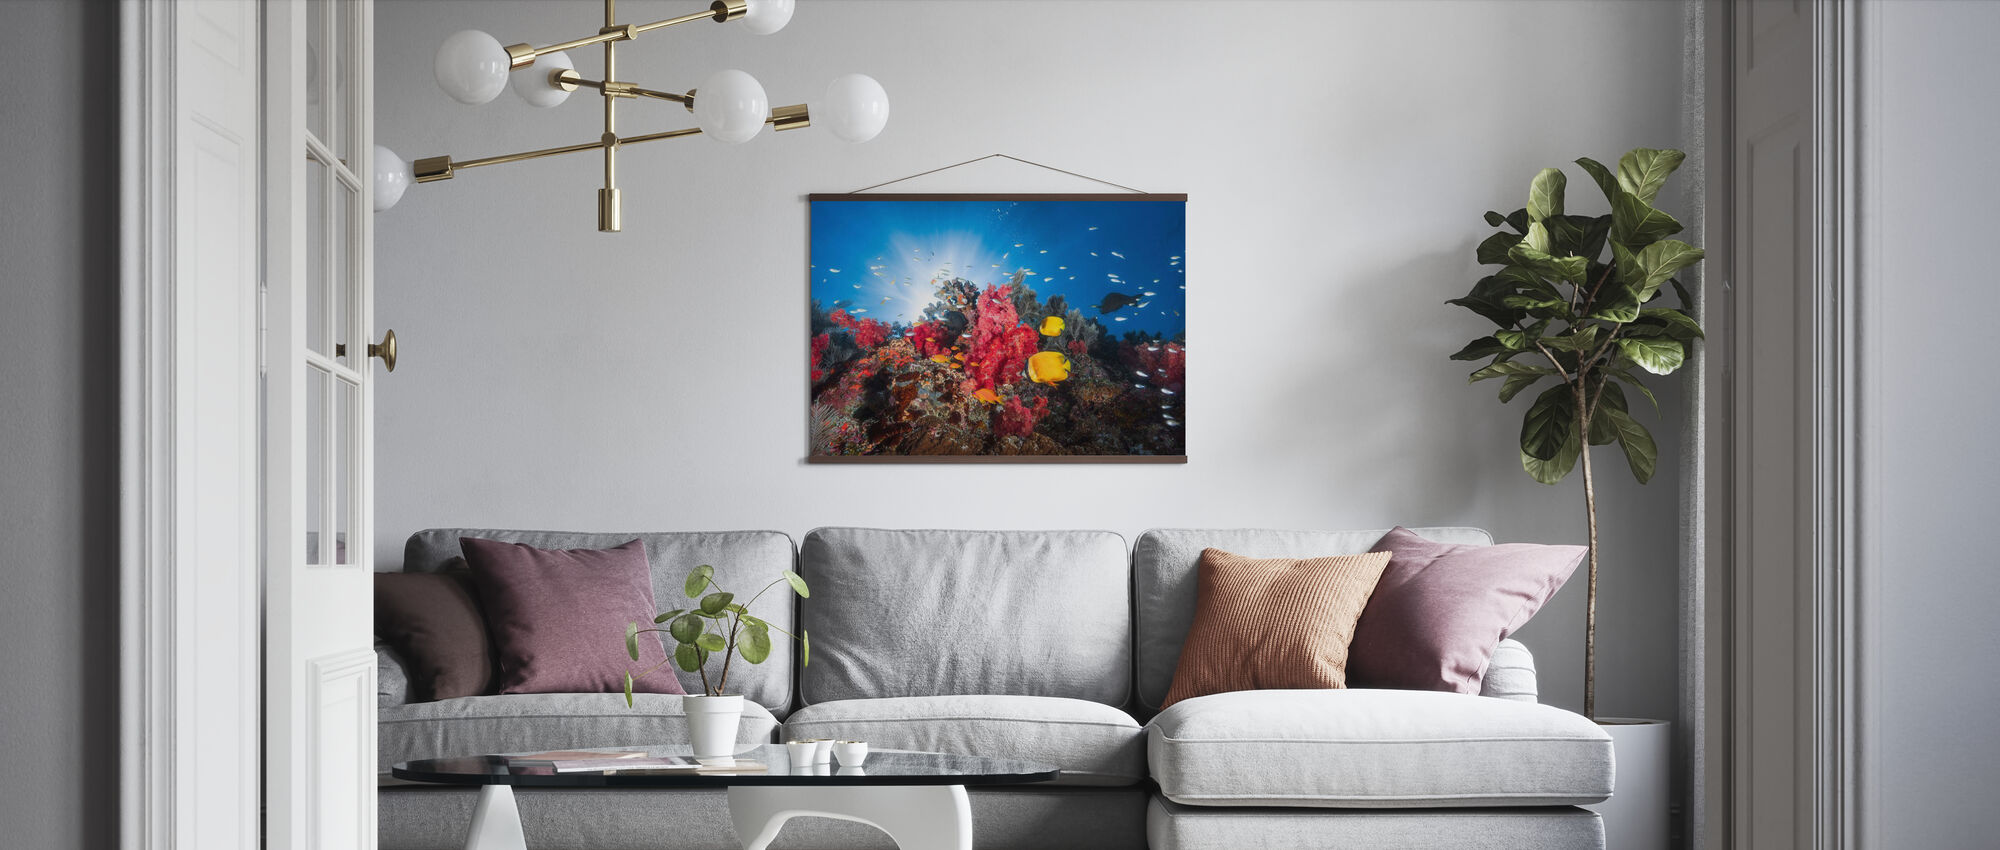 Fish and Coral Reefs - Poster - Living Room